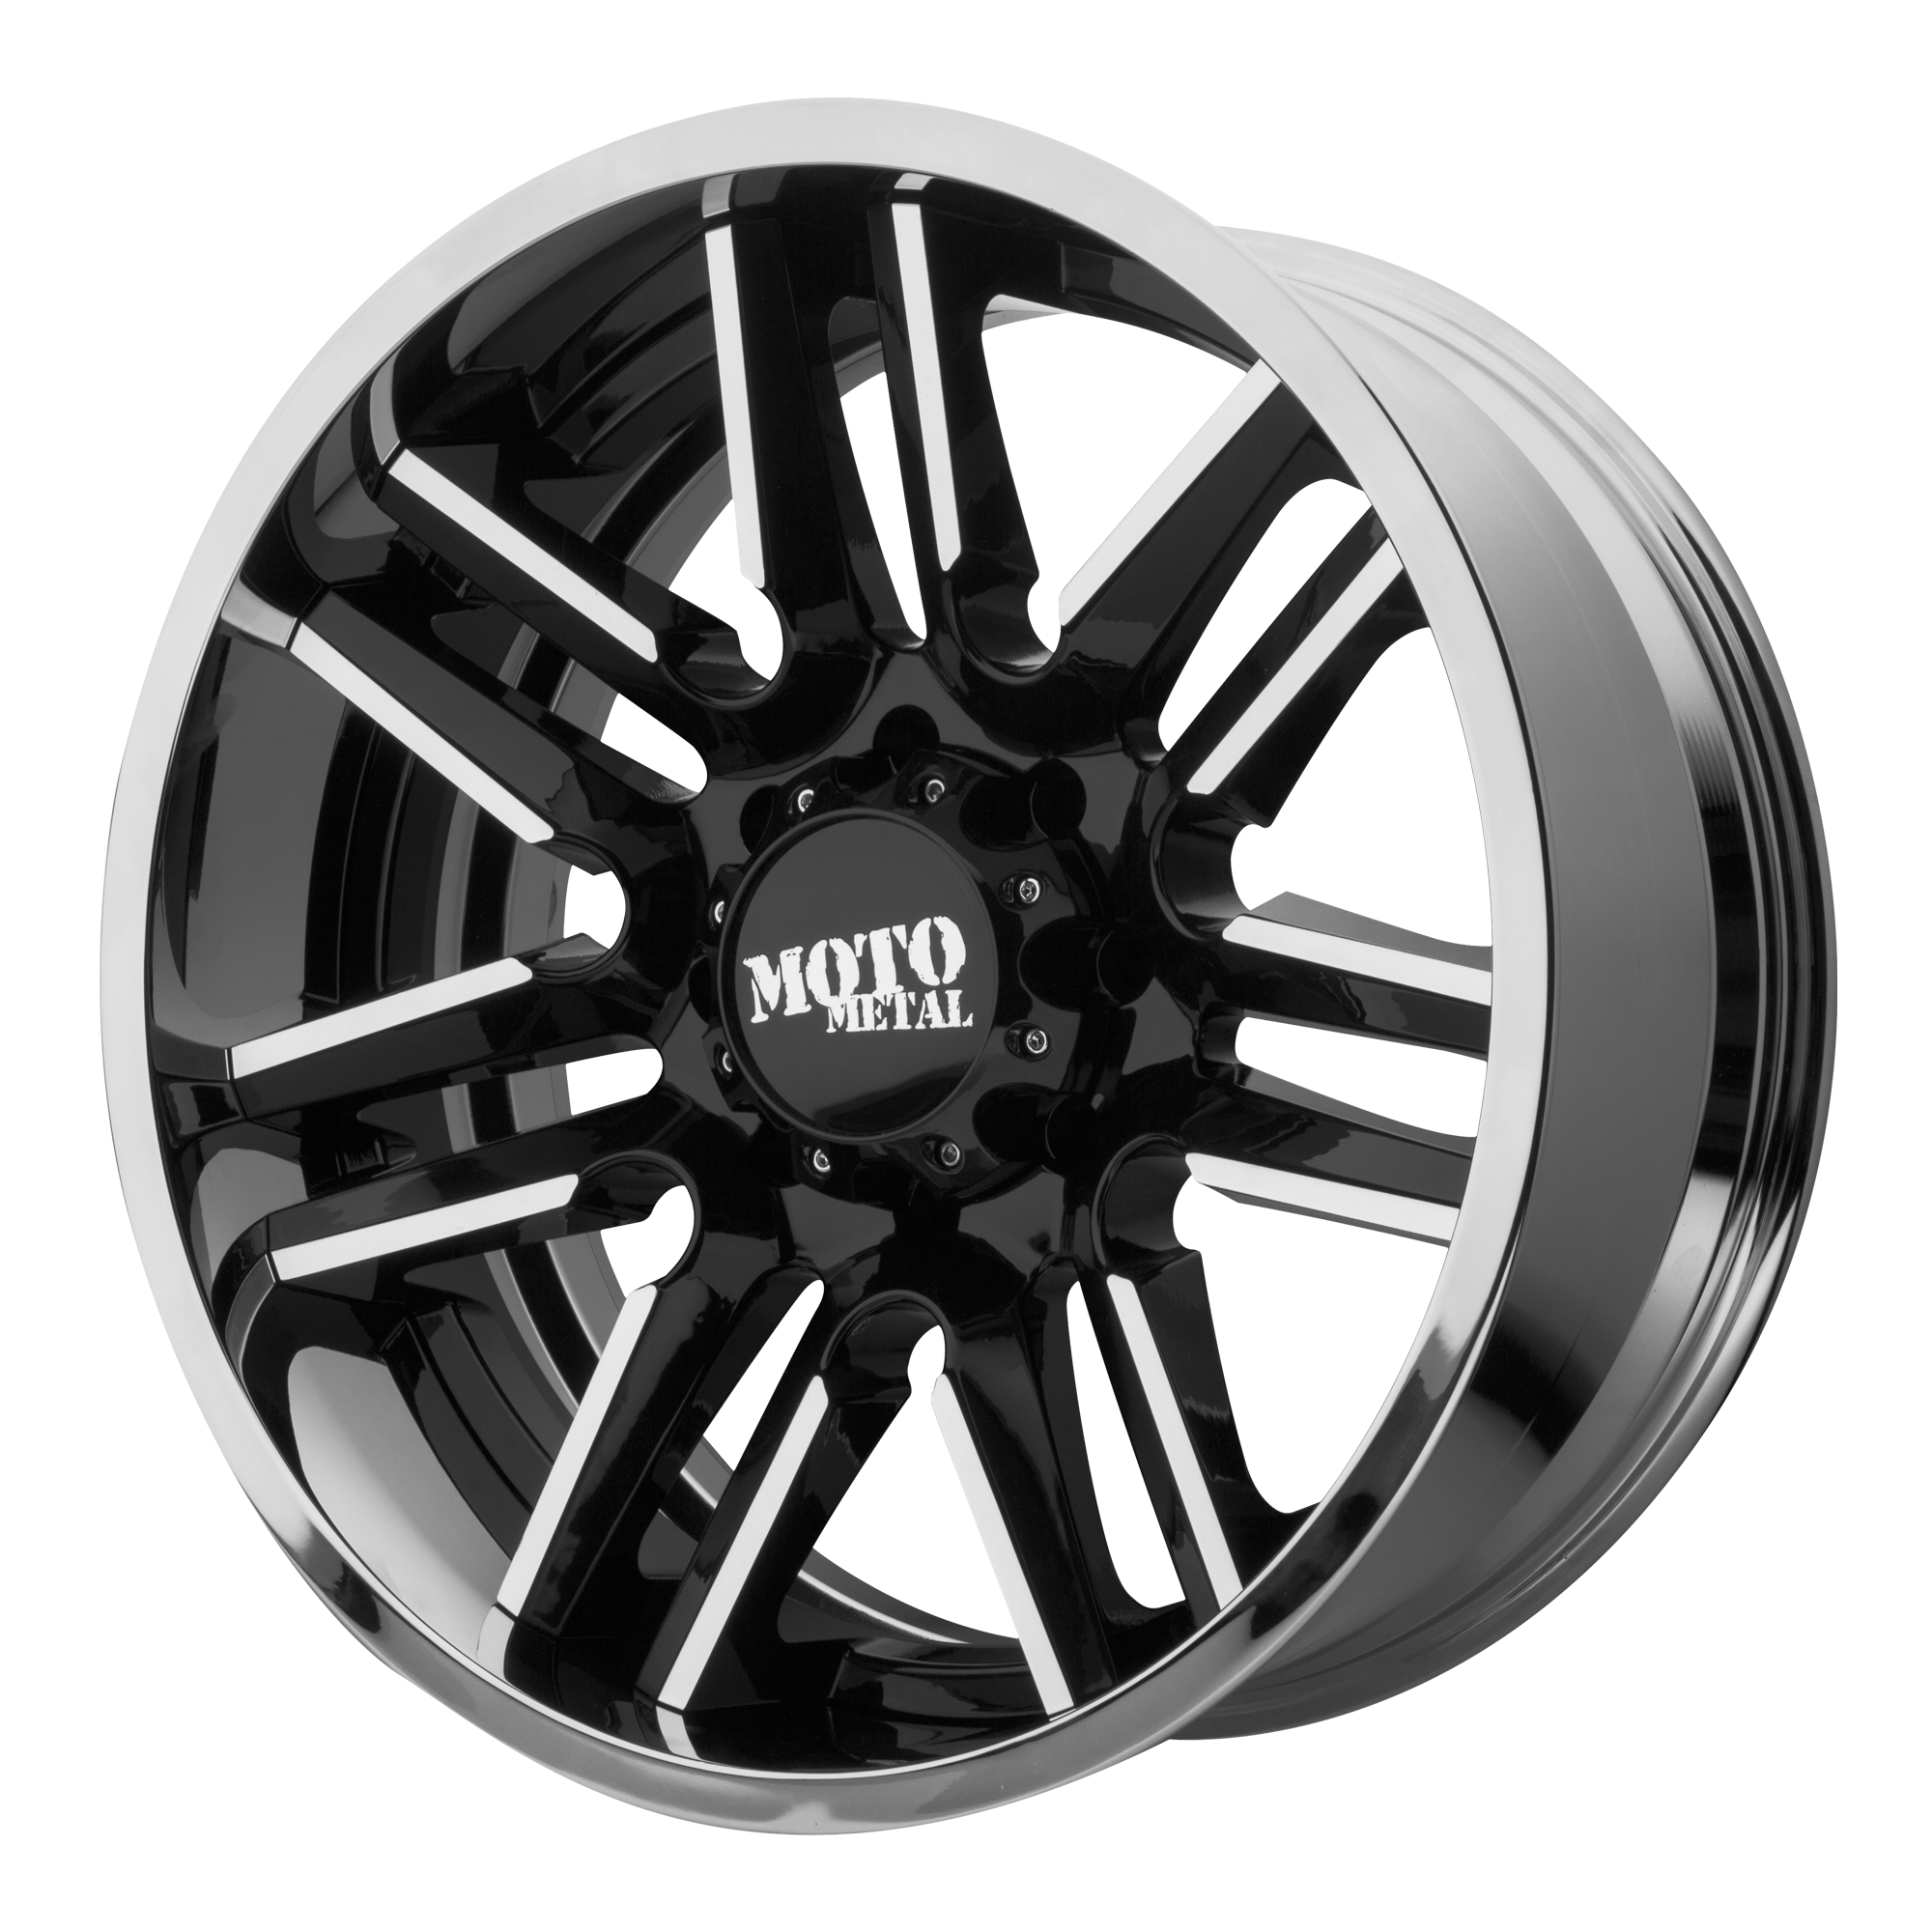 Moto Metal Offroad Wheels MO202 Gloss Black Machined CENTER w/ Chrome Lip